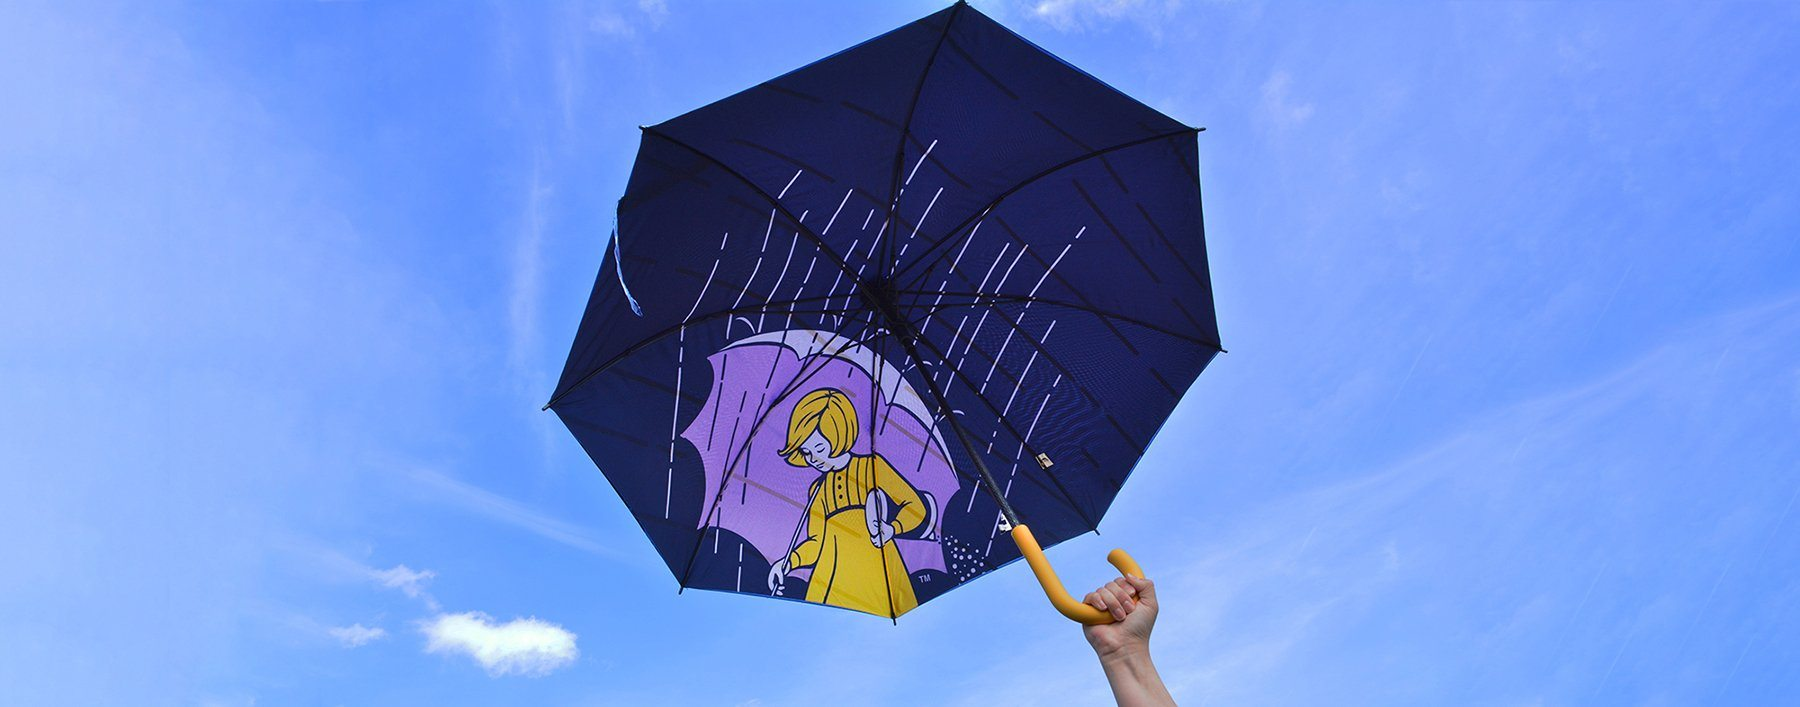 Morton Umbrella